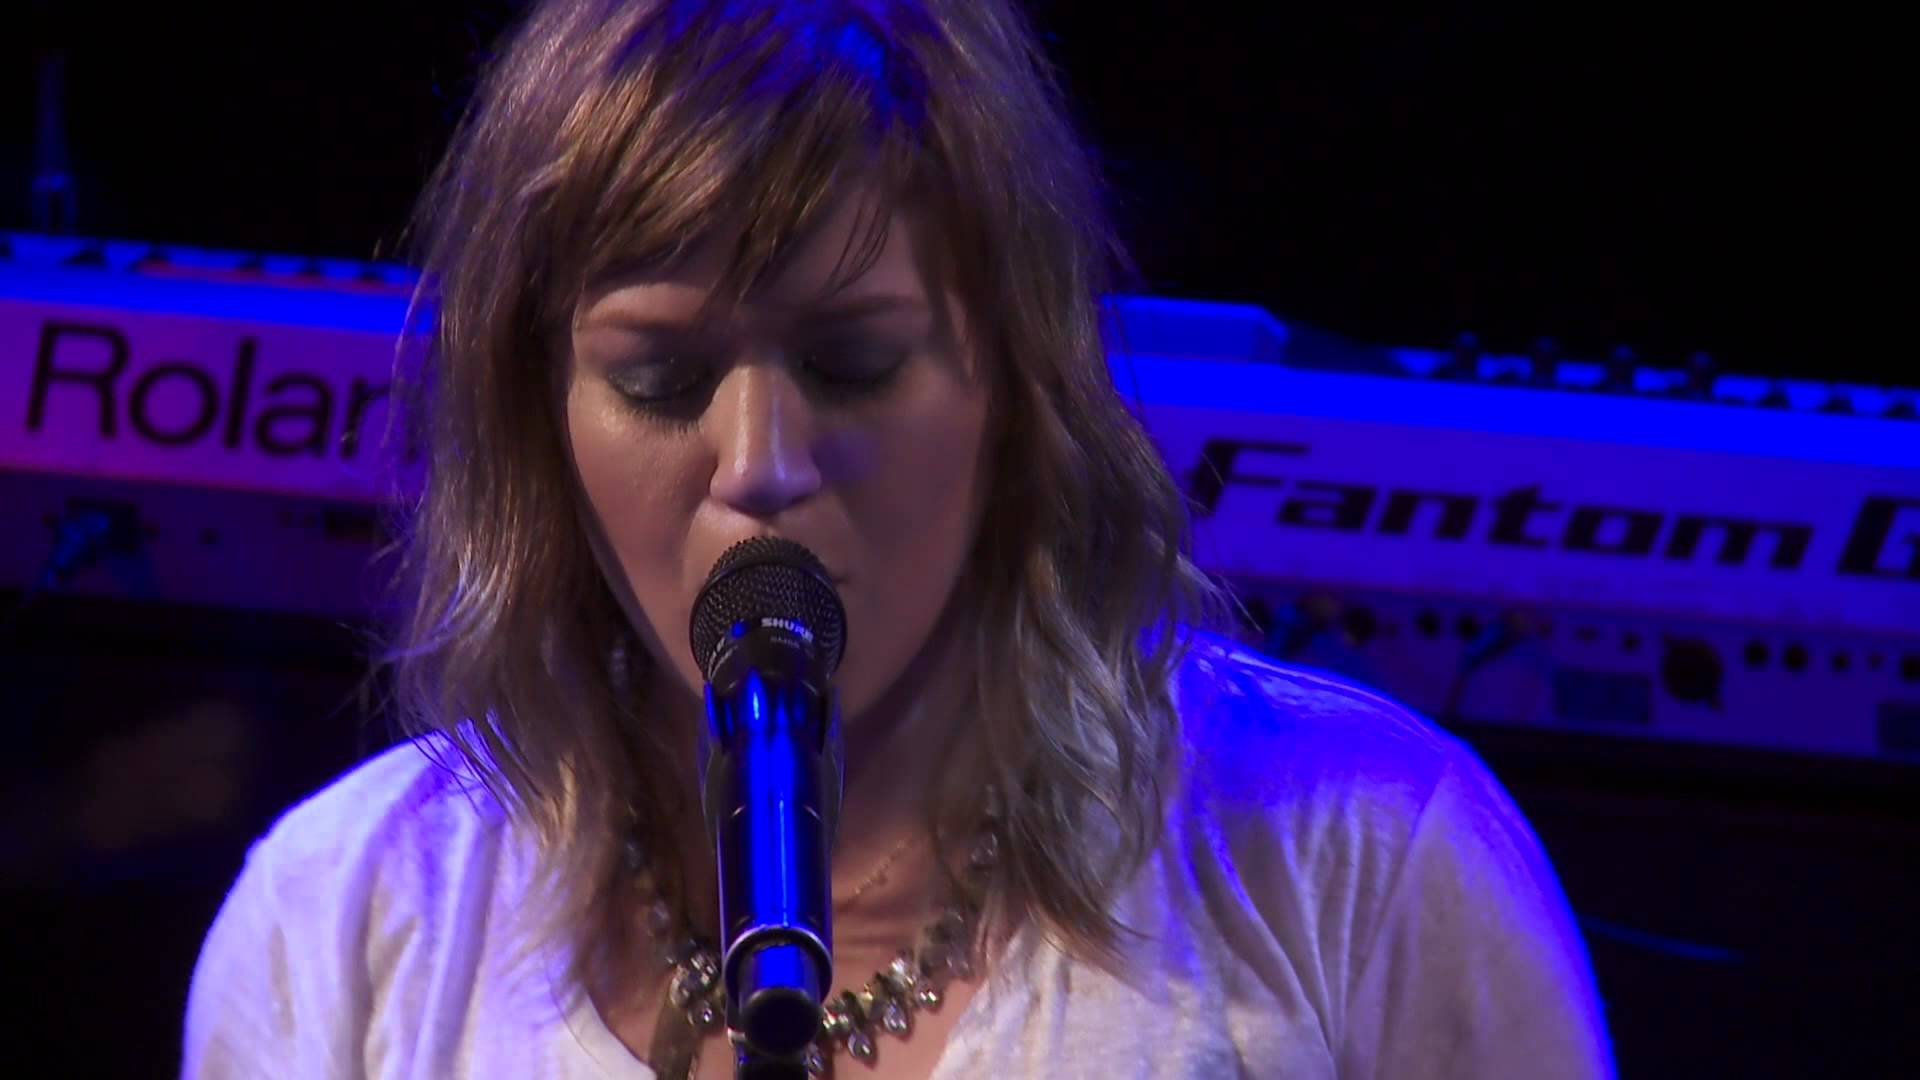 Kelly Clarkson – Sober (Live From the Troubadour 10/19/11)